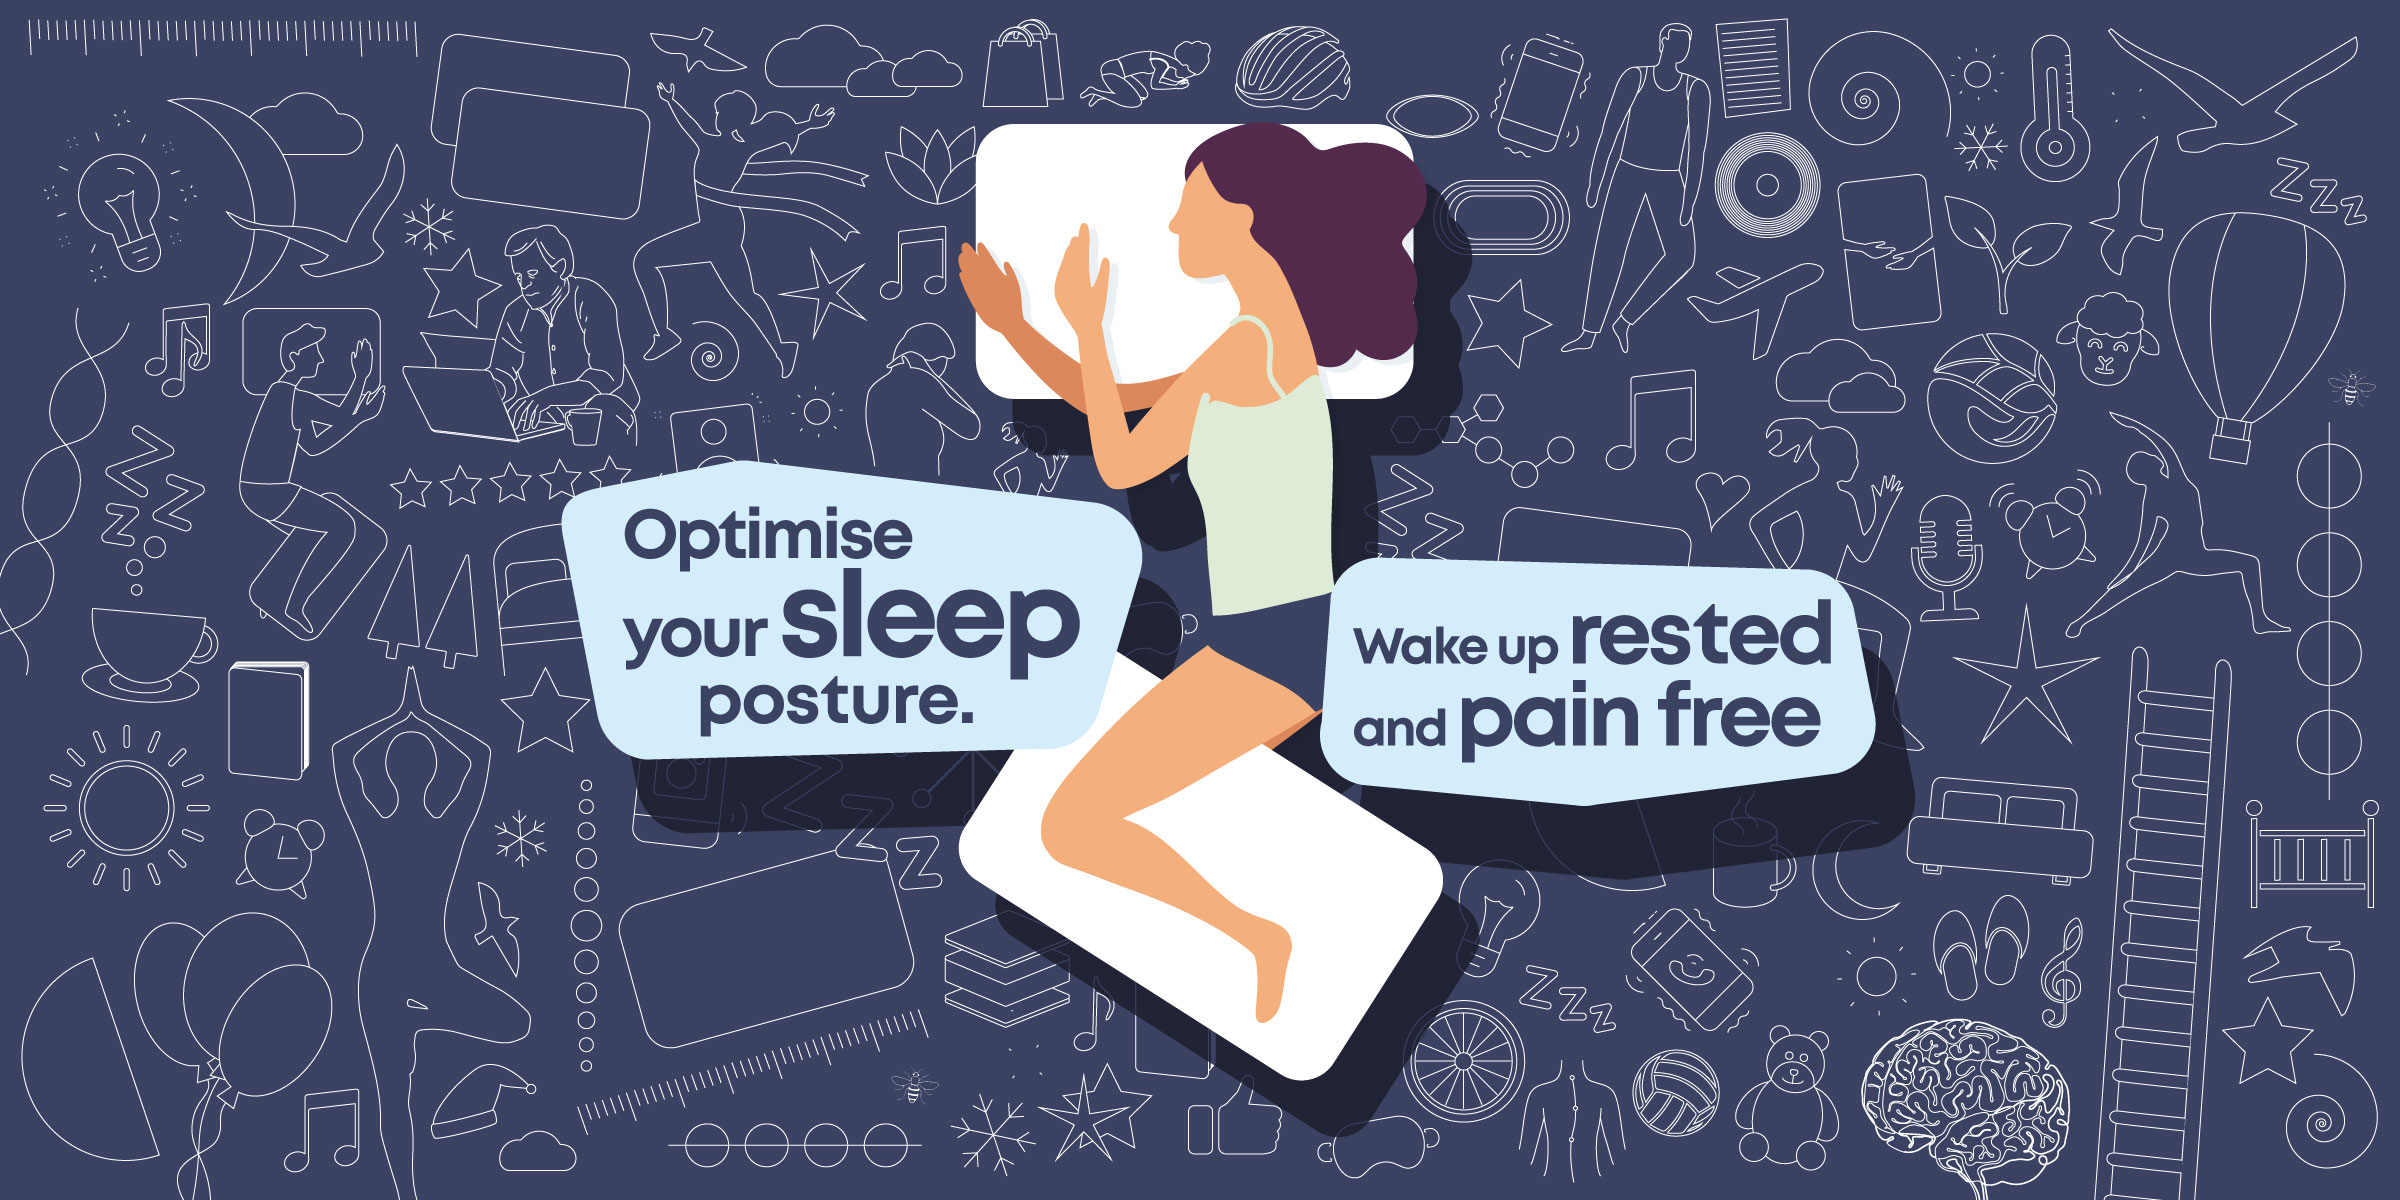 correct sleep posture shown with writing saying 'optimise your sleep posture, wake up rested and pain free'